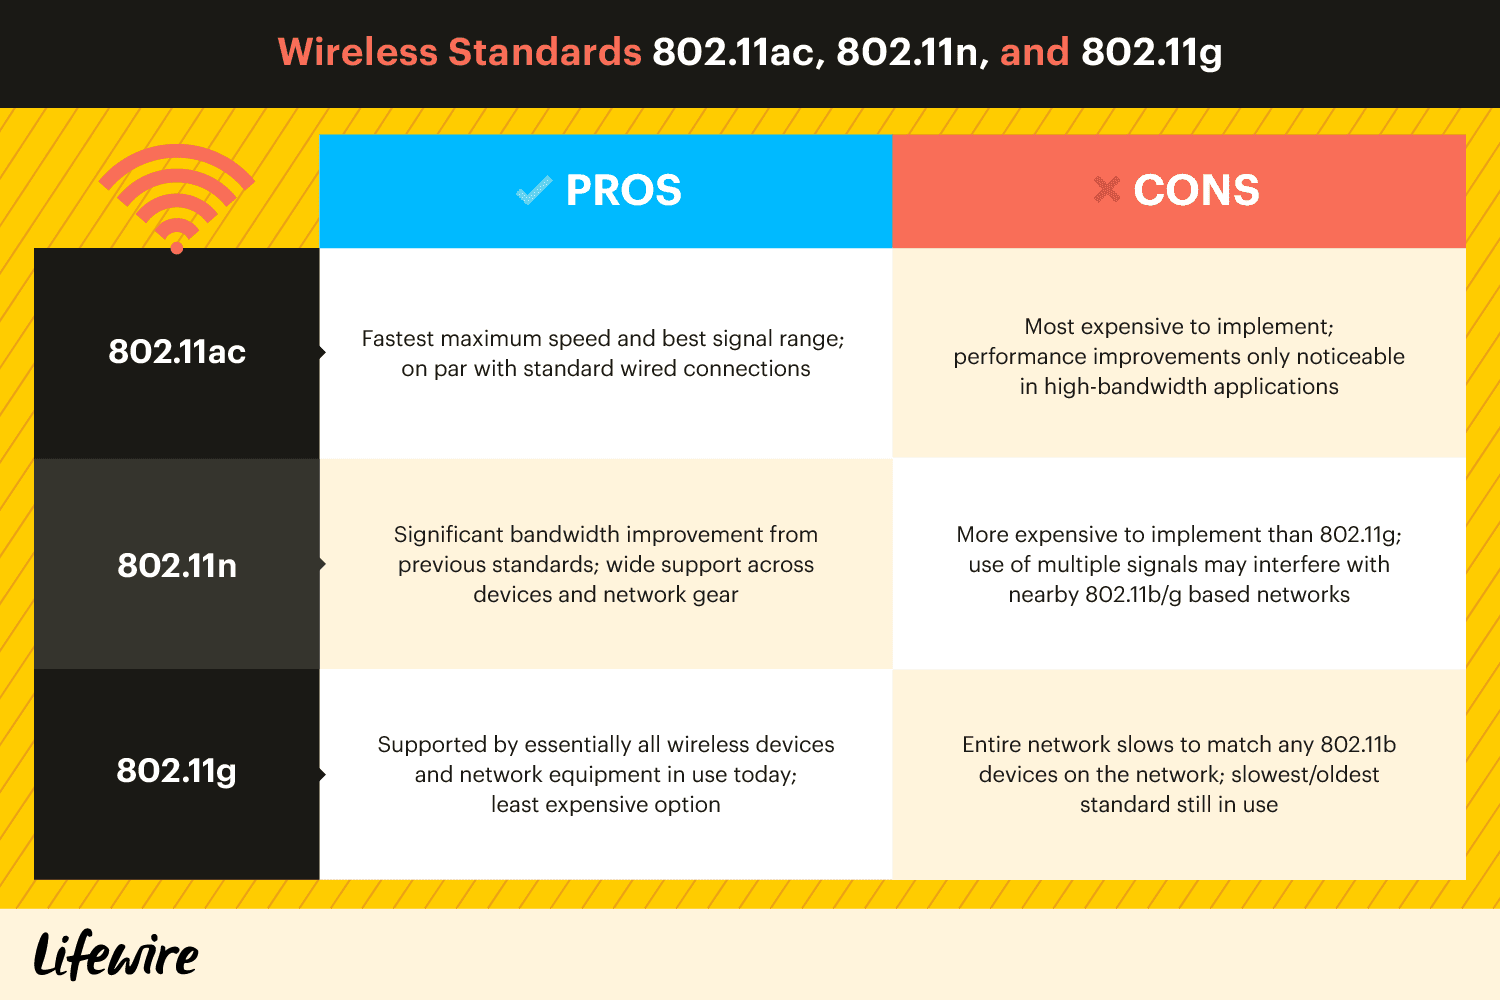 A comparison chart of the Pros and Cons of the wireless standards 802.11sc, 802.11n, and 802.11g.